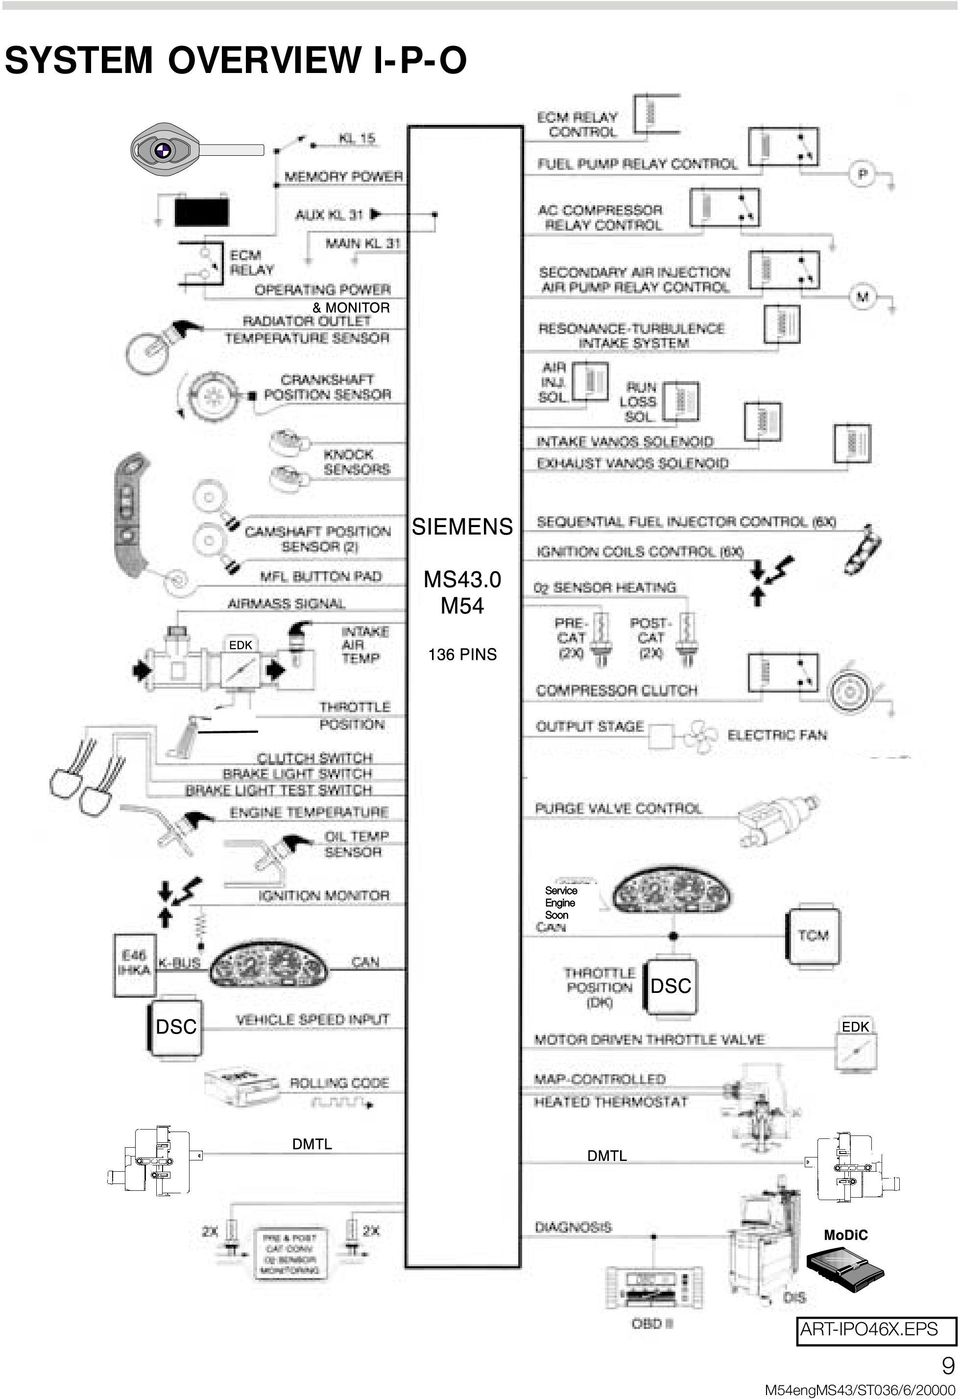 M54 Engine Introduction 2 Mechanical Changes 4 Performance A C Condenser Fan Fuse Box Diagram 1996 Nissan Maxima For Soon Art Ipo46x